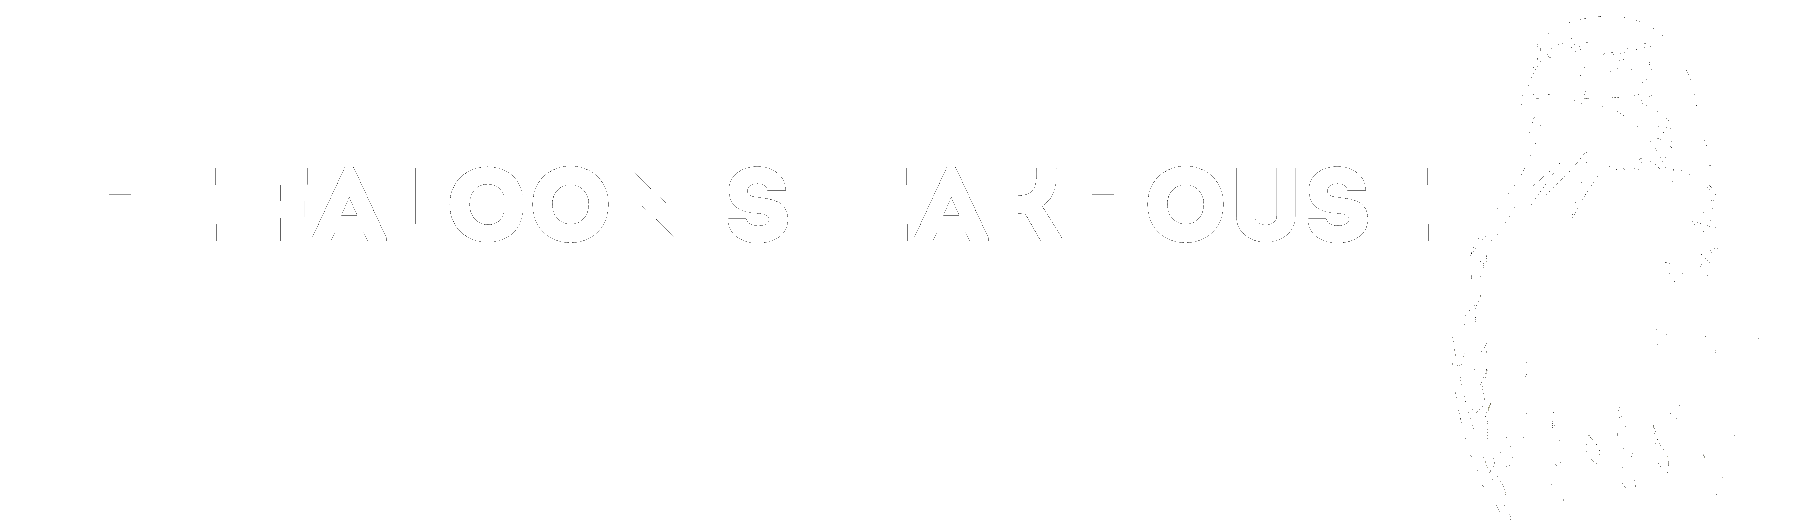 The Falcon Steakhouse